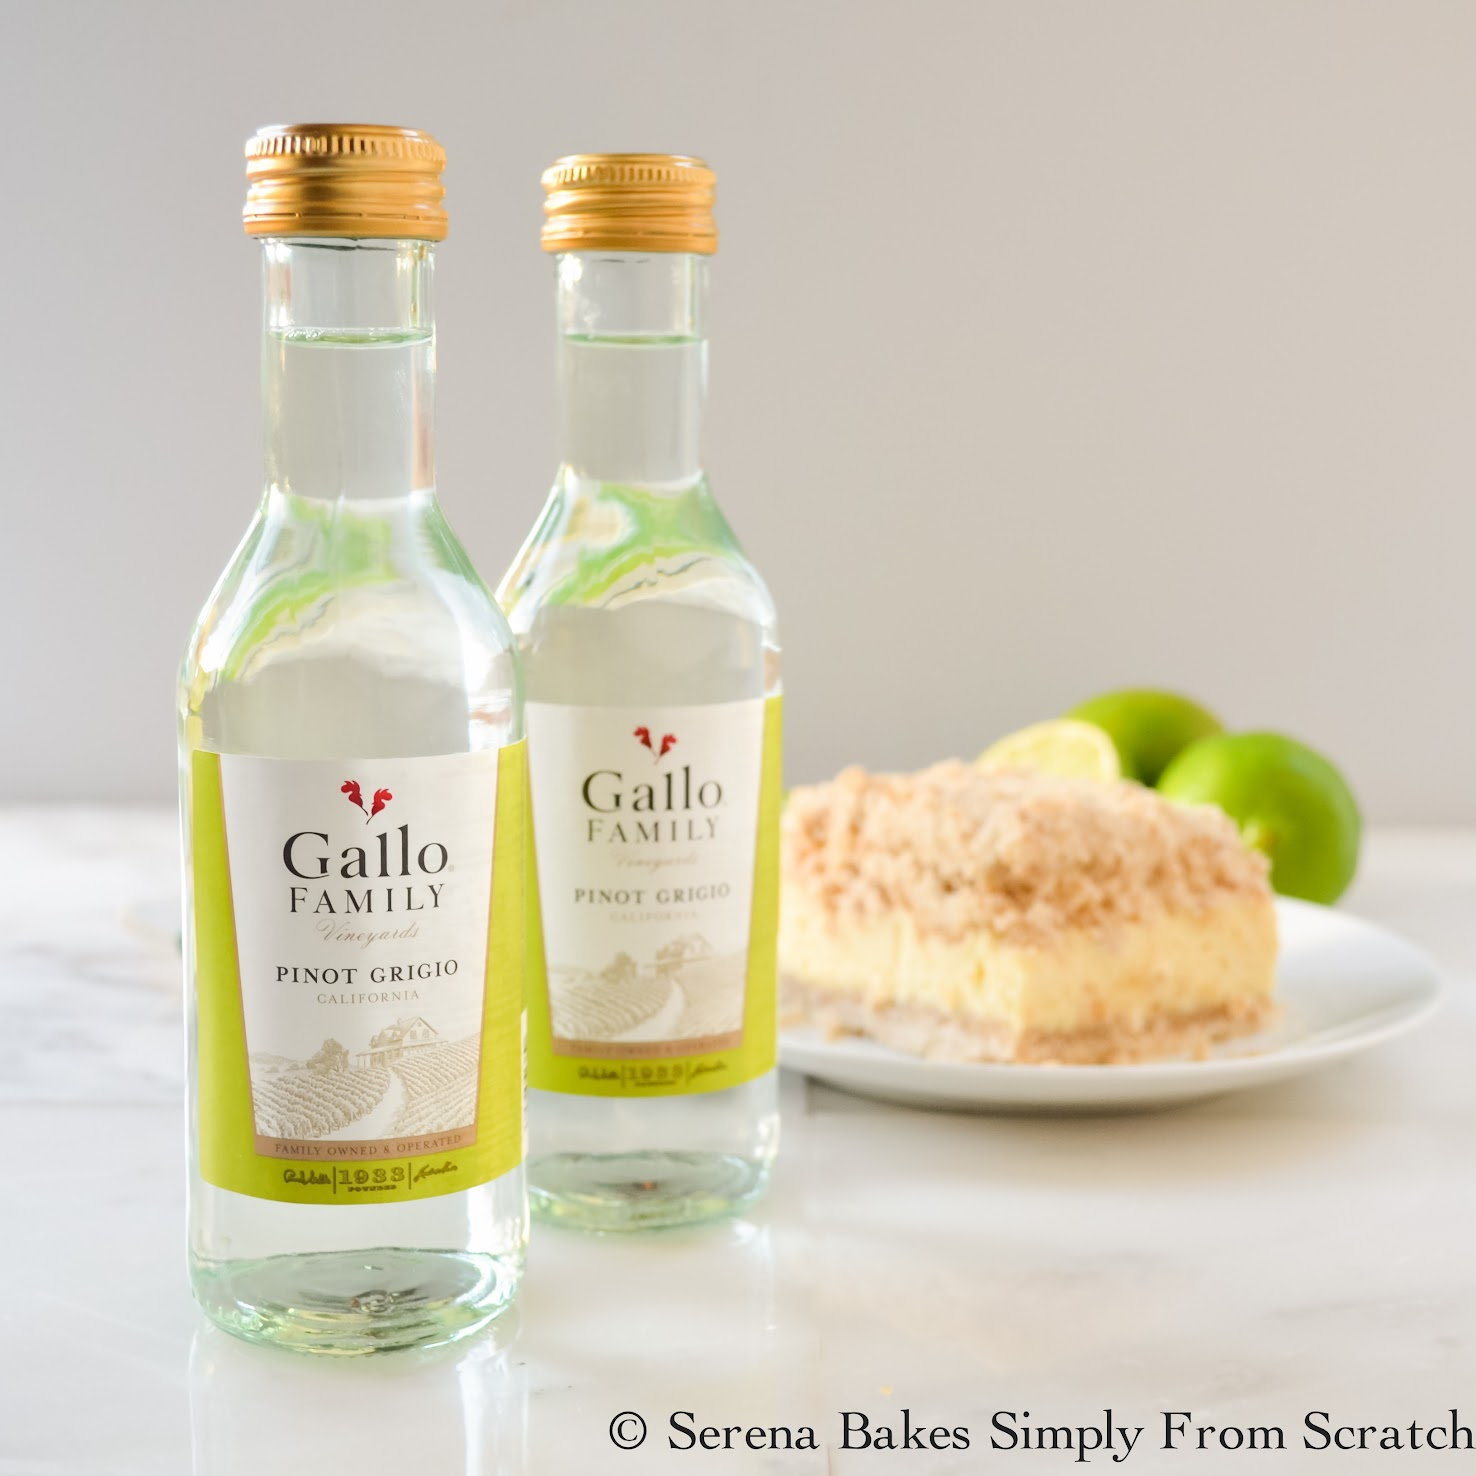 Key Lime Cheesecake Crumb Bars with Gallo Family Wines www.serenabakessimplyfromscratch.com